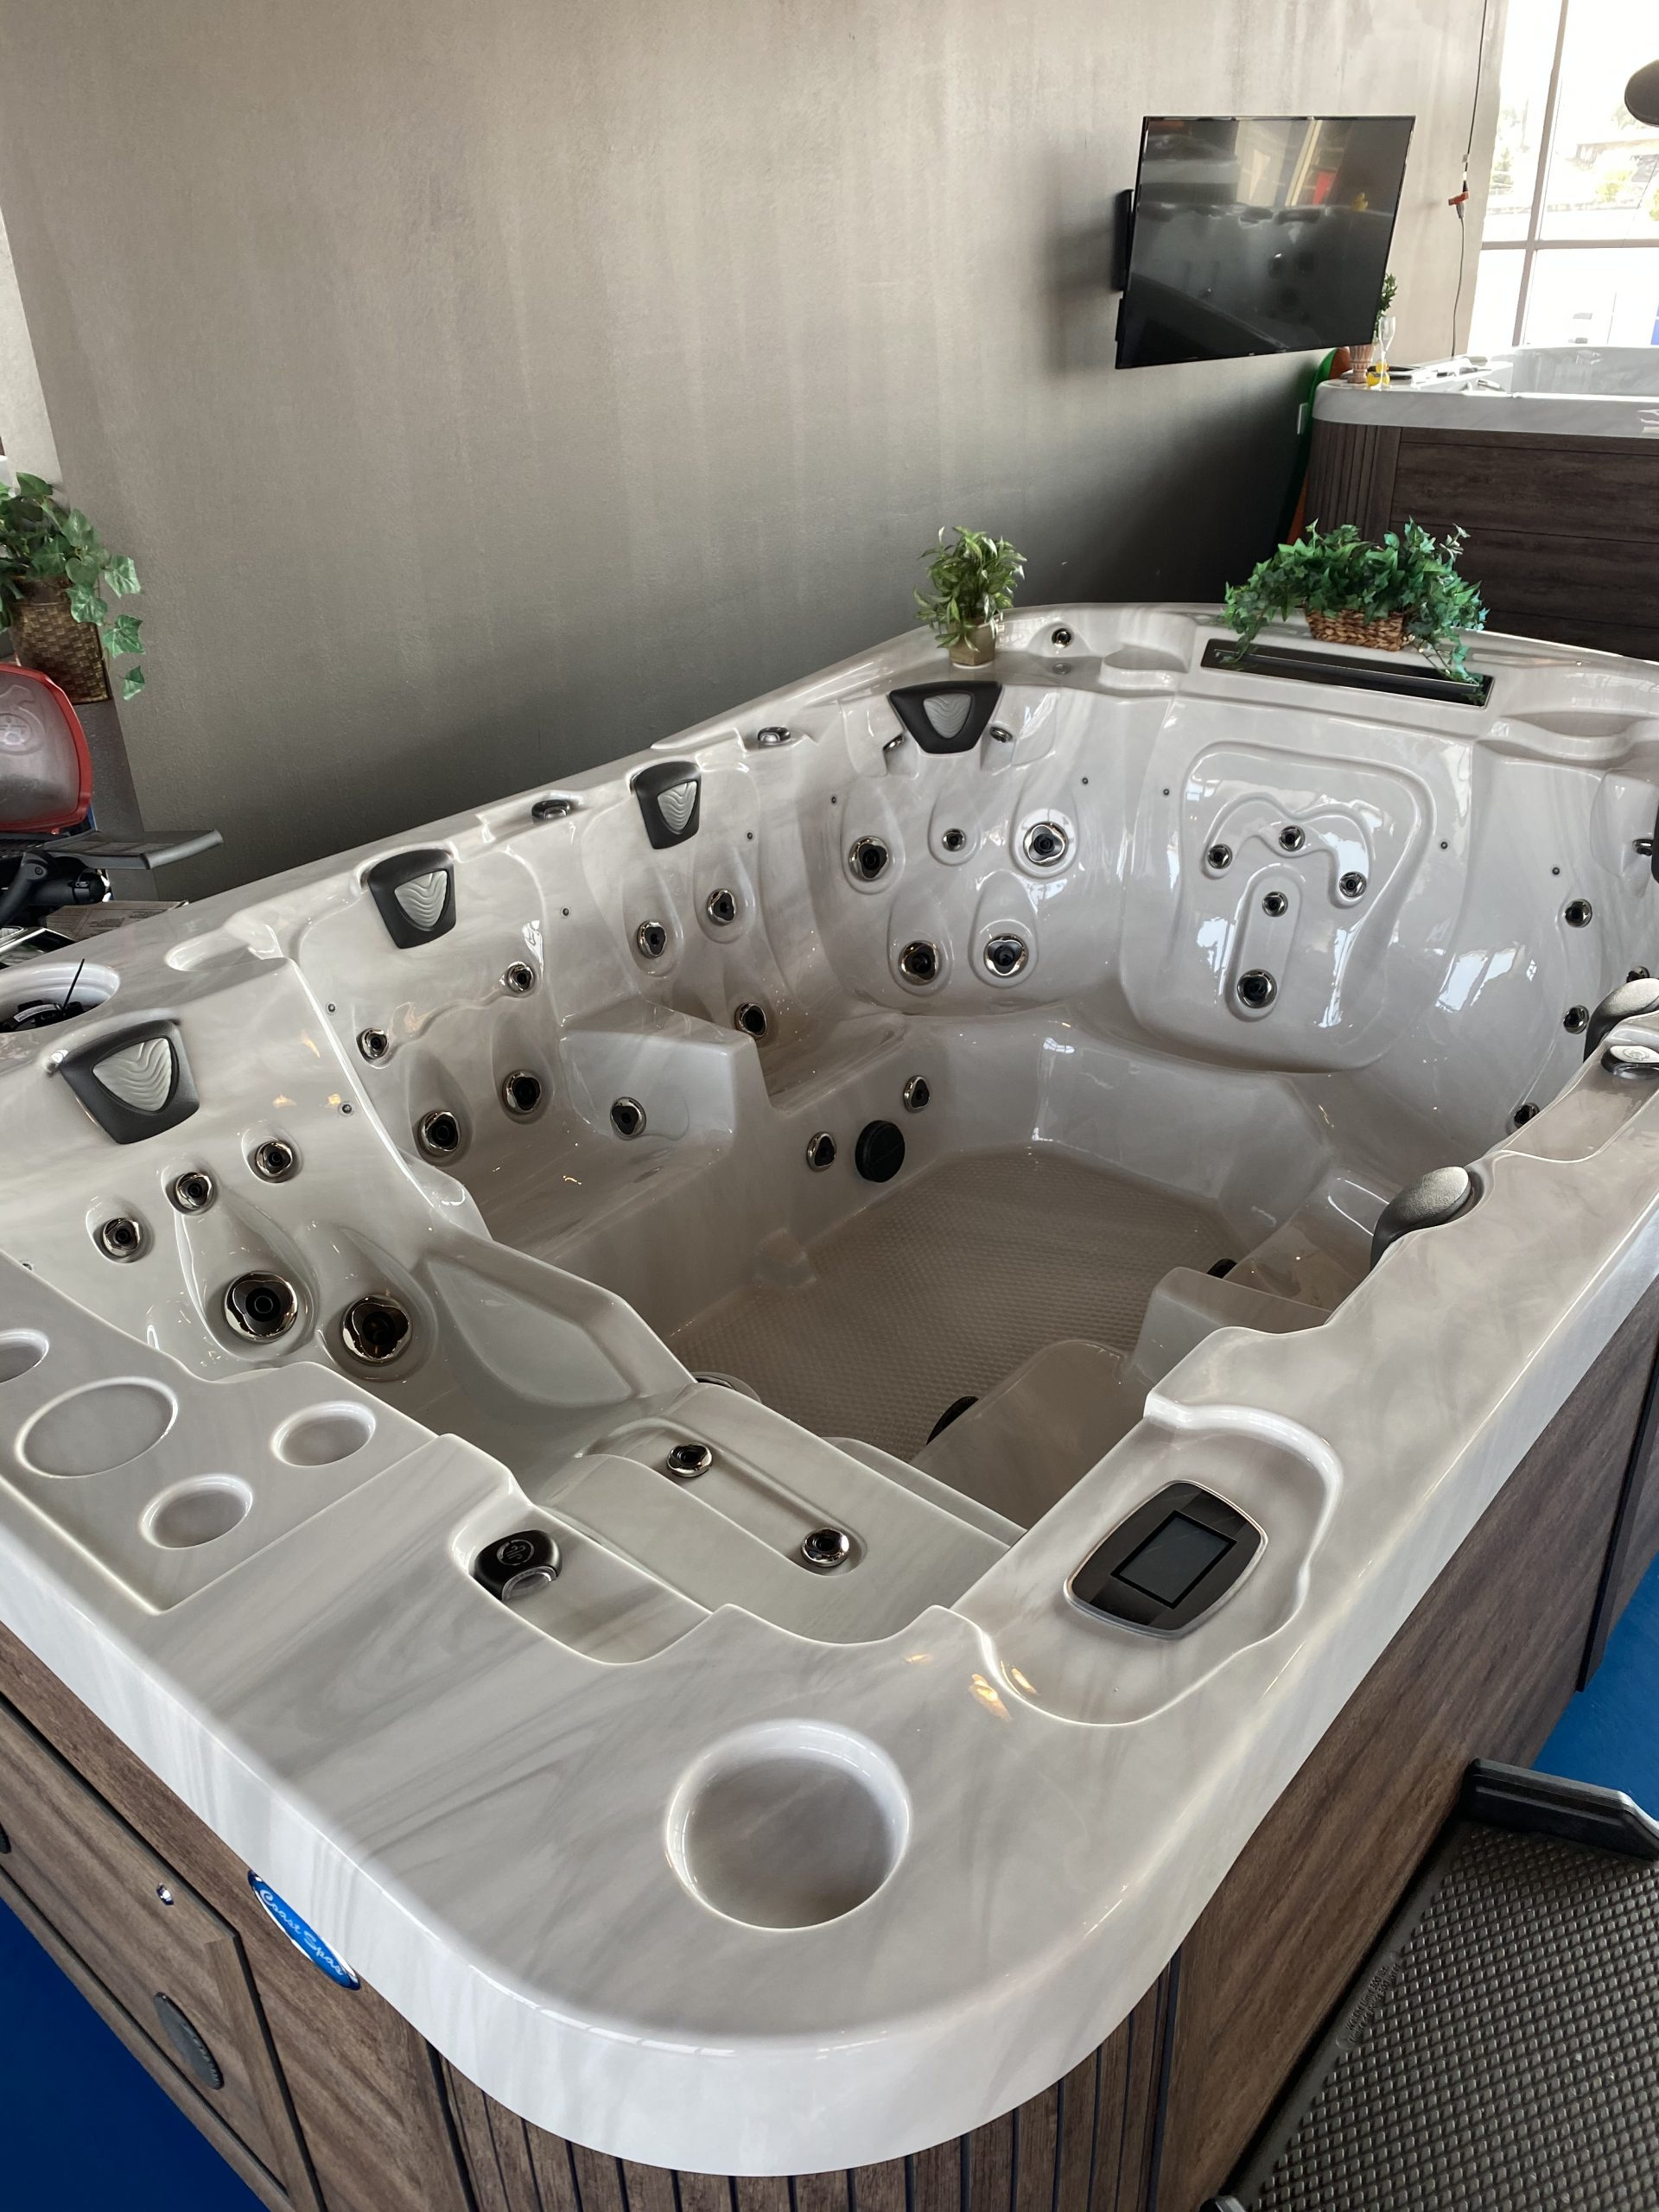 What are the Different Hot Tub Brands?